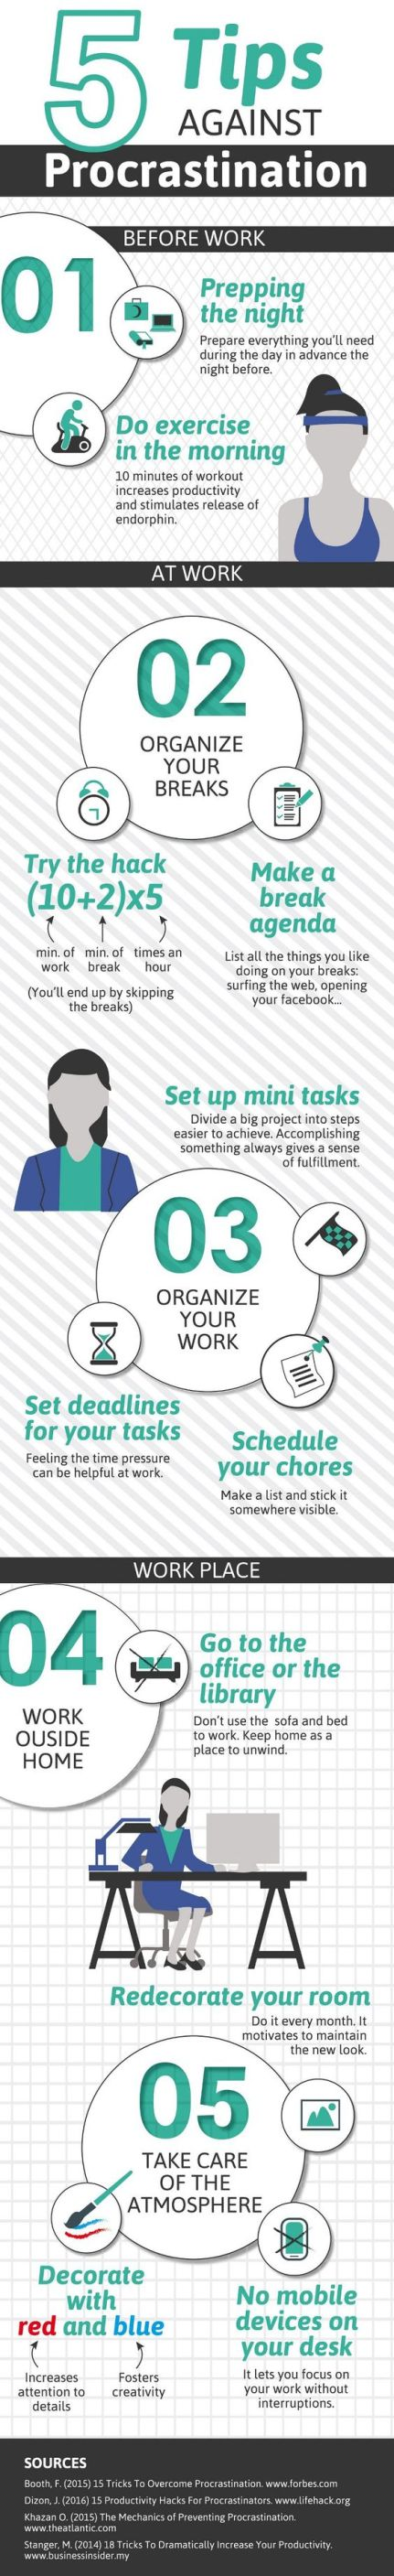 Get more things done by following these great tips to stop procrastinating.: